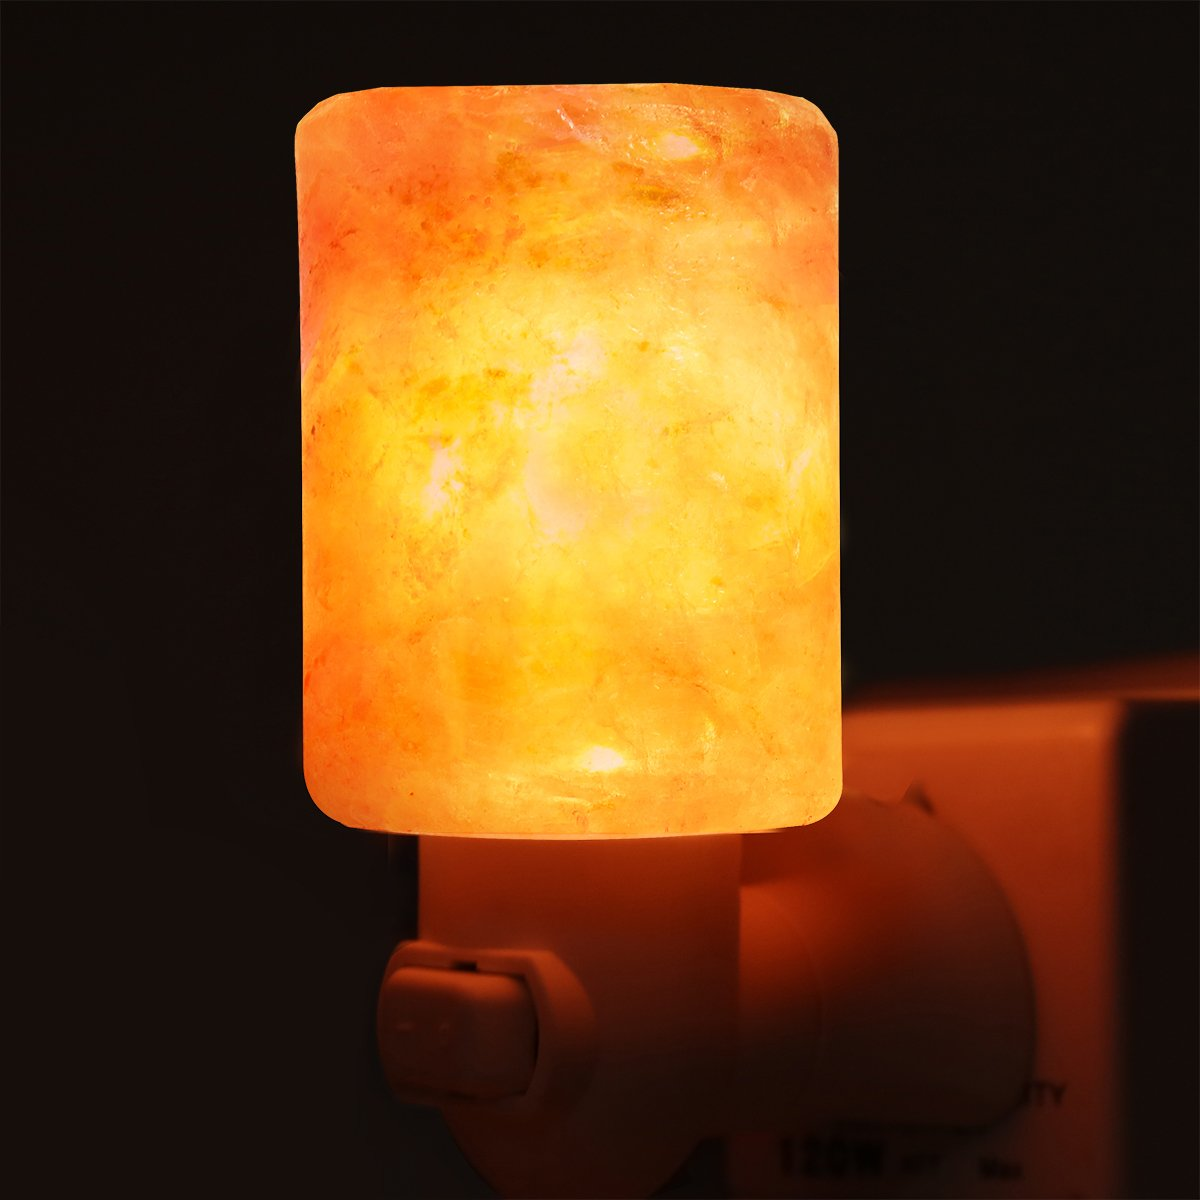 Haraqi Himalayan Salt Lamp Night Light Hand Carved Wall light with UL Approval Listed Plug for Living Dining Bed Room and Office (Cylinder-shaped one pack)